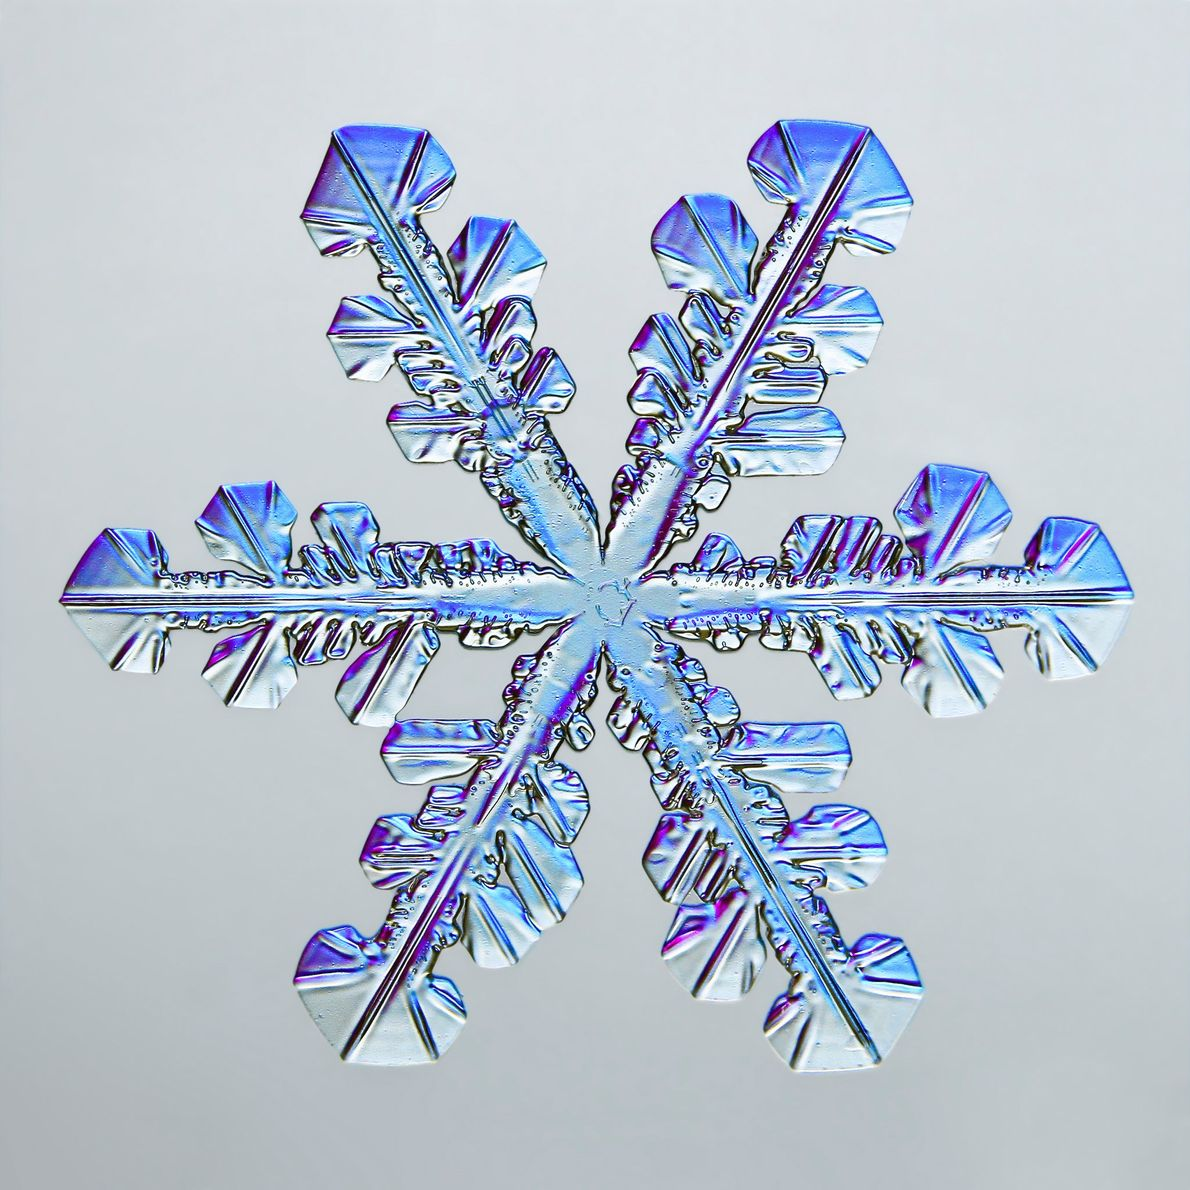 A snowflake's many hexagonal facets gleam blue and purple, thanks to illumination provided by Vermont-based photographer …